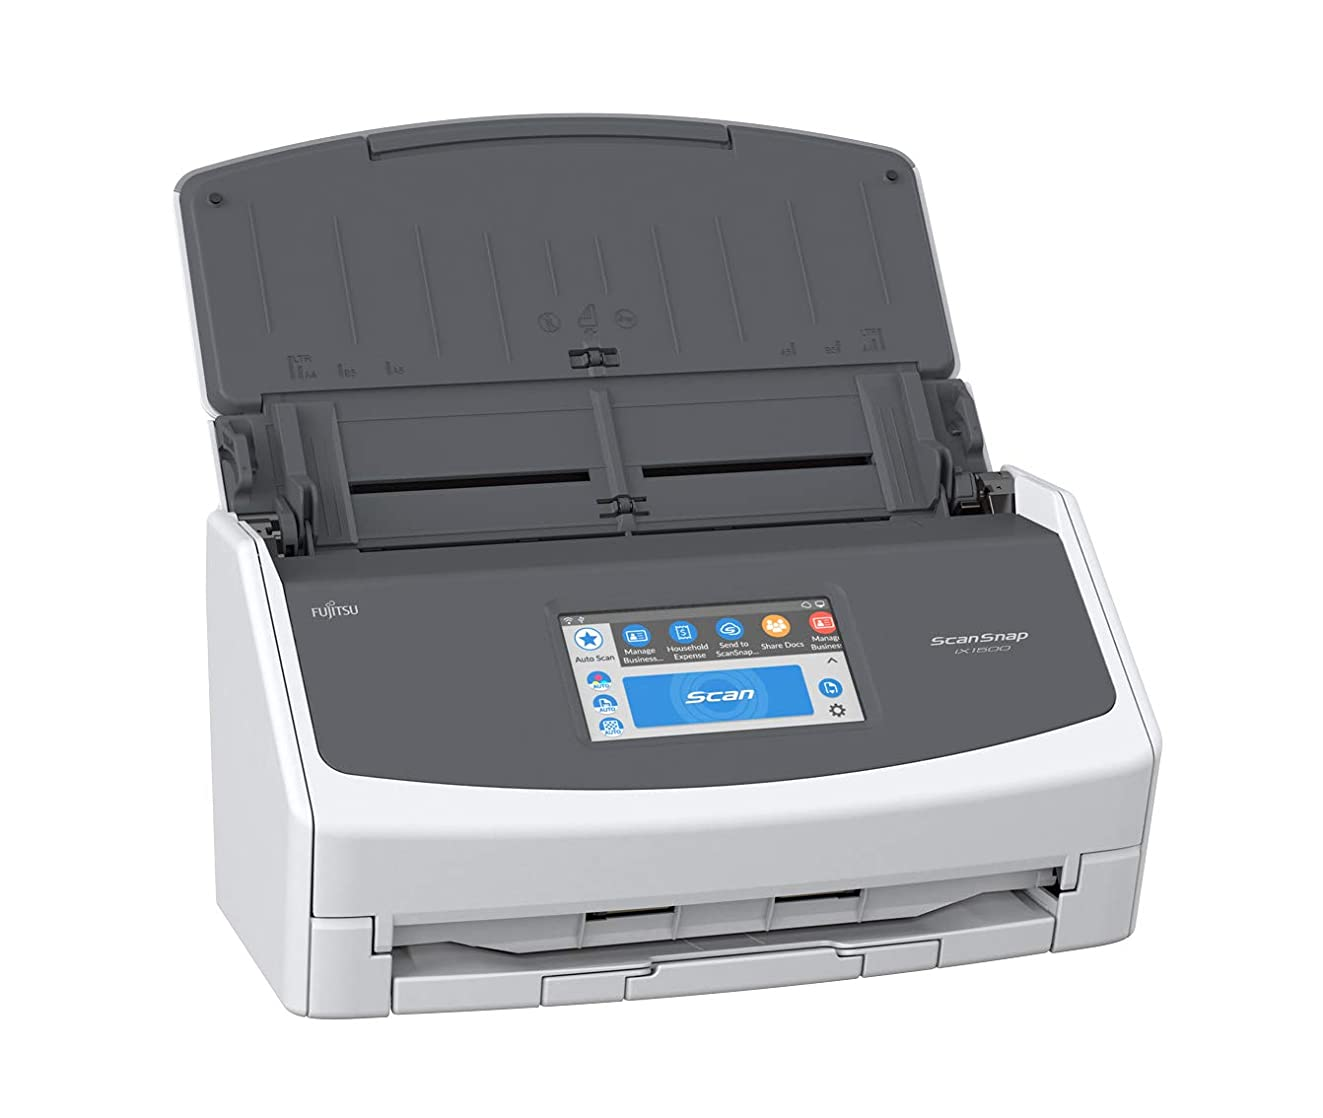 Fujitsu ScanSnap iX1500 Color Duplex Document Scanner with Touch Screen for Mac and PC [Current Model, 2018 Release]